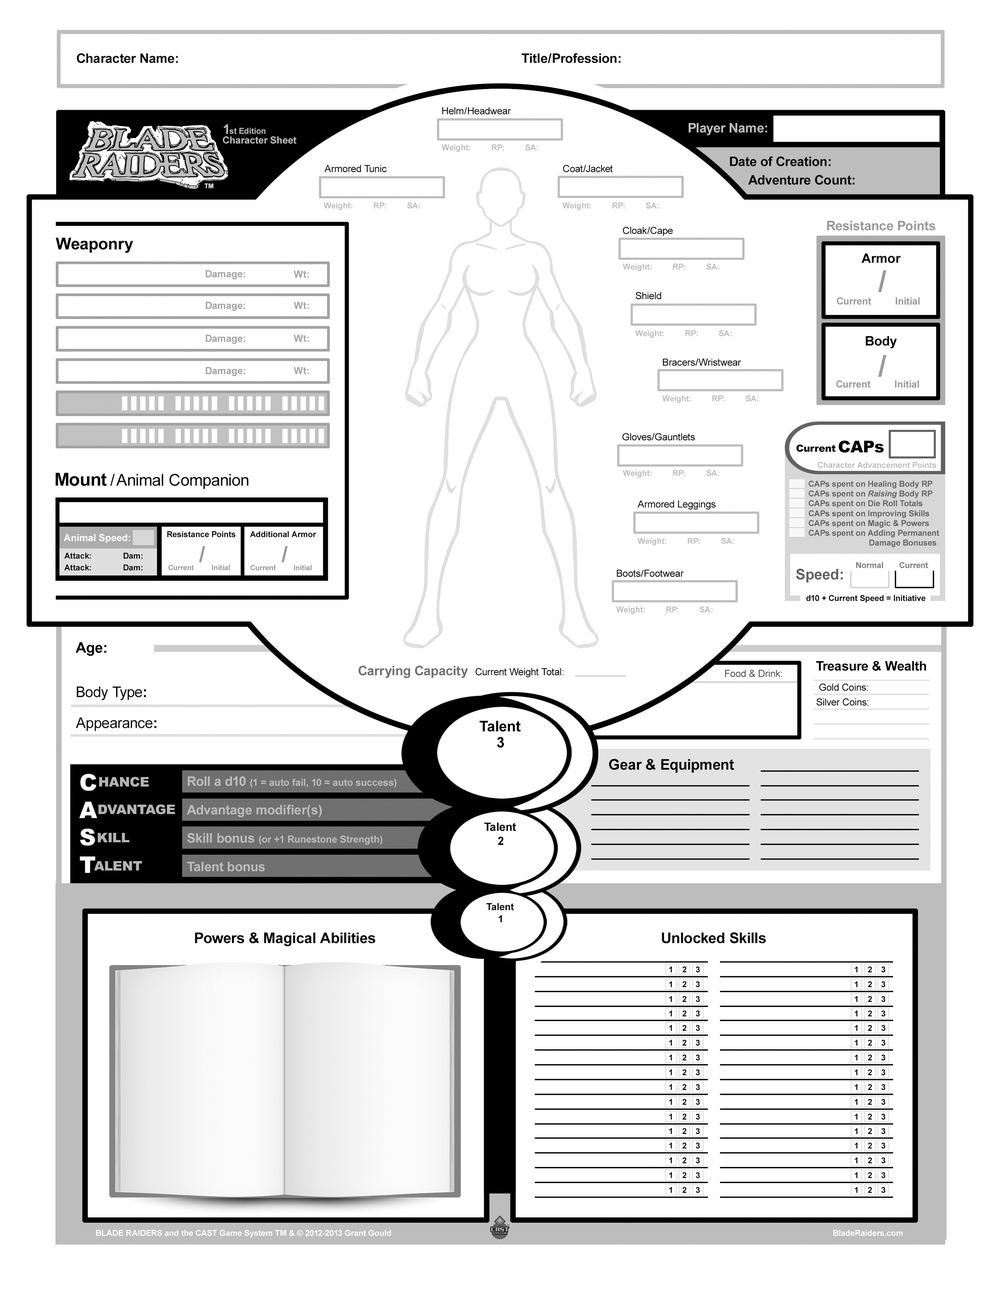 BLADE RAIDERS Female Character Sheet